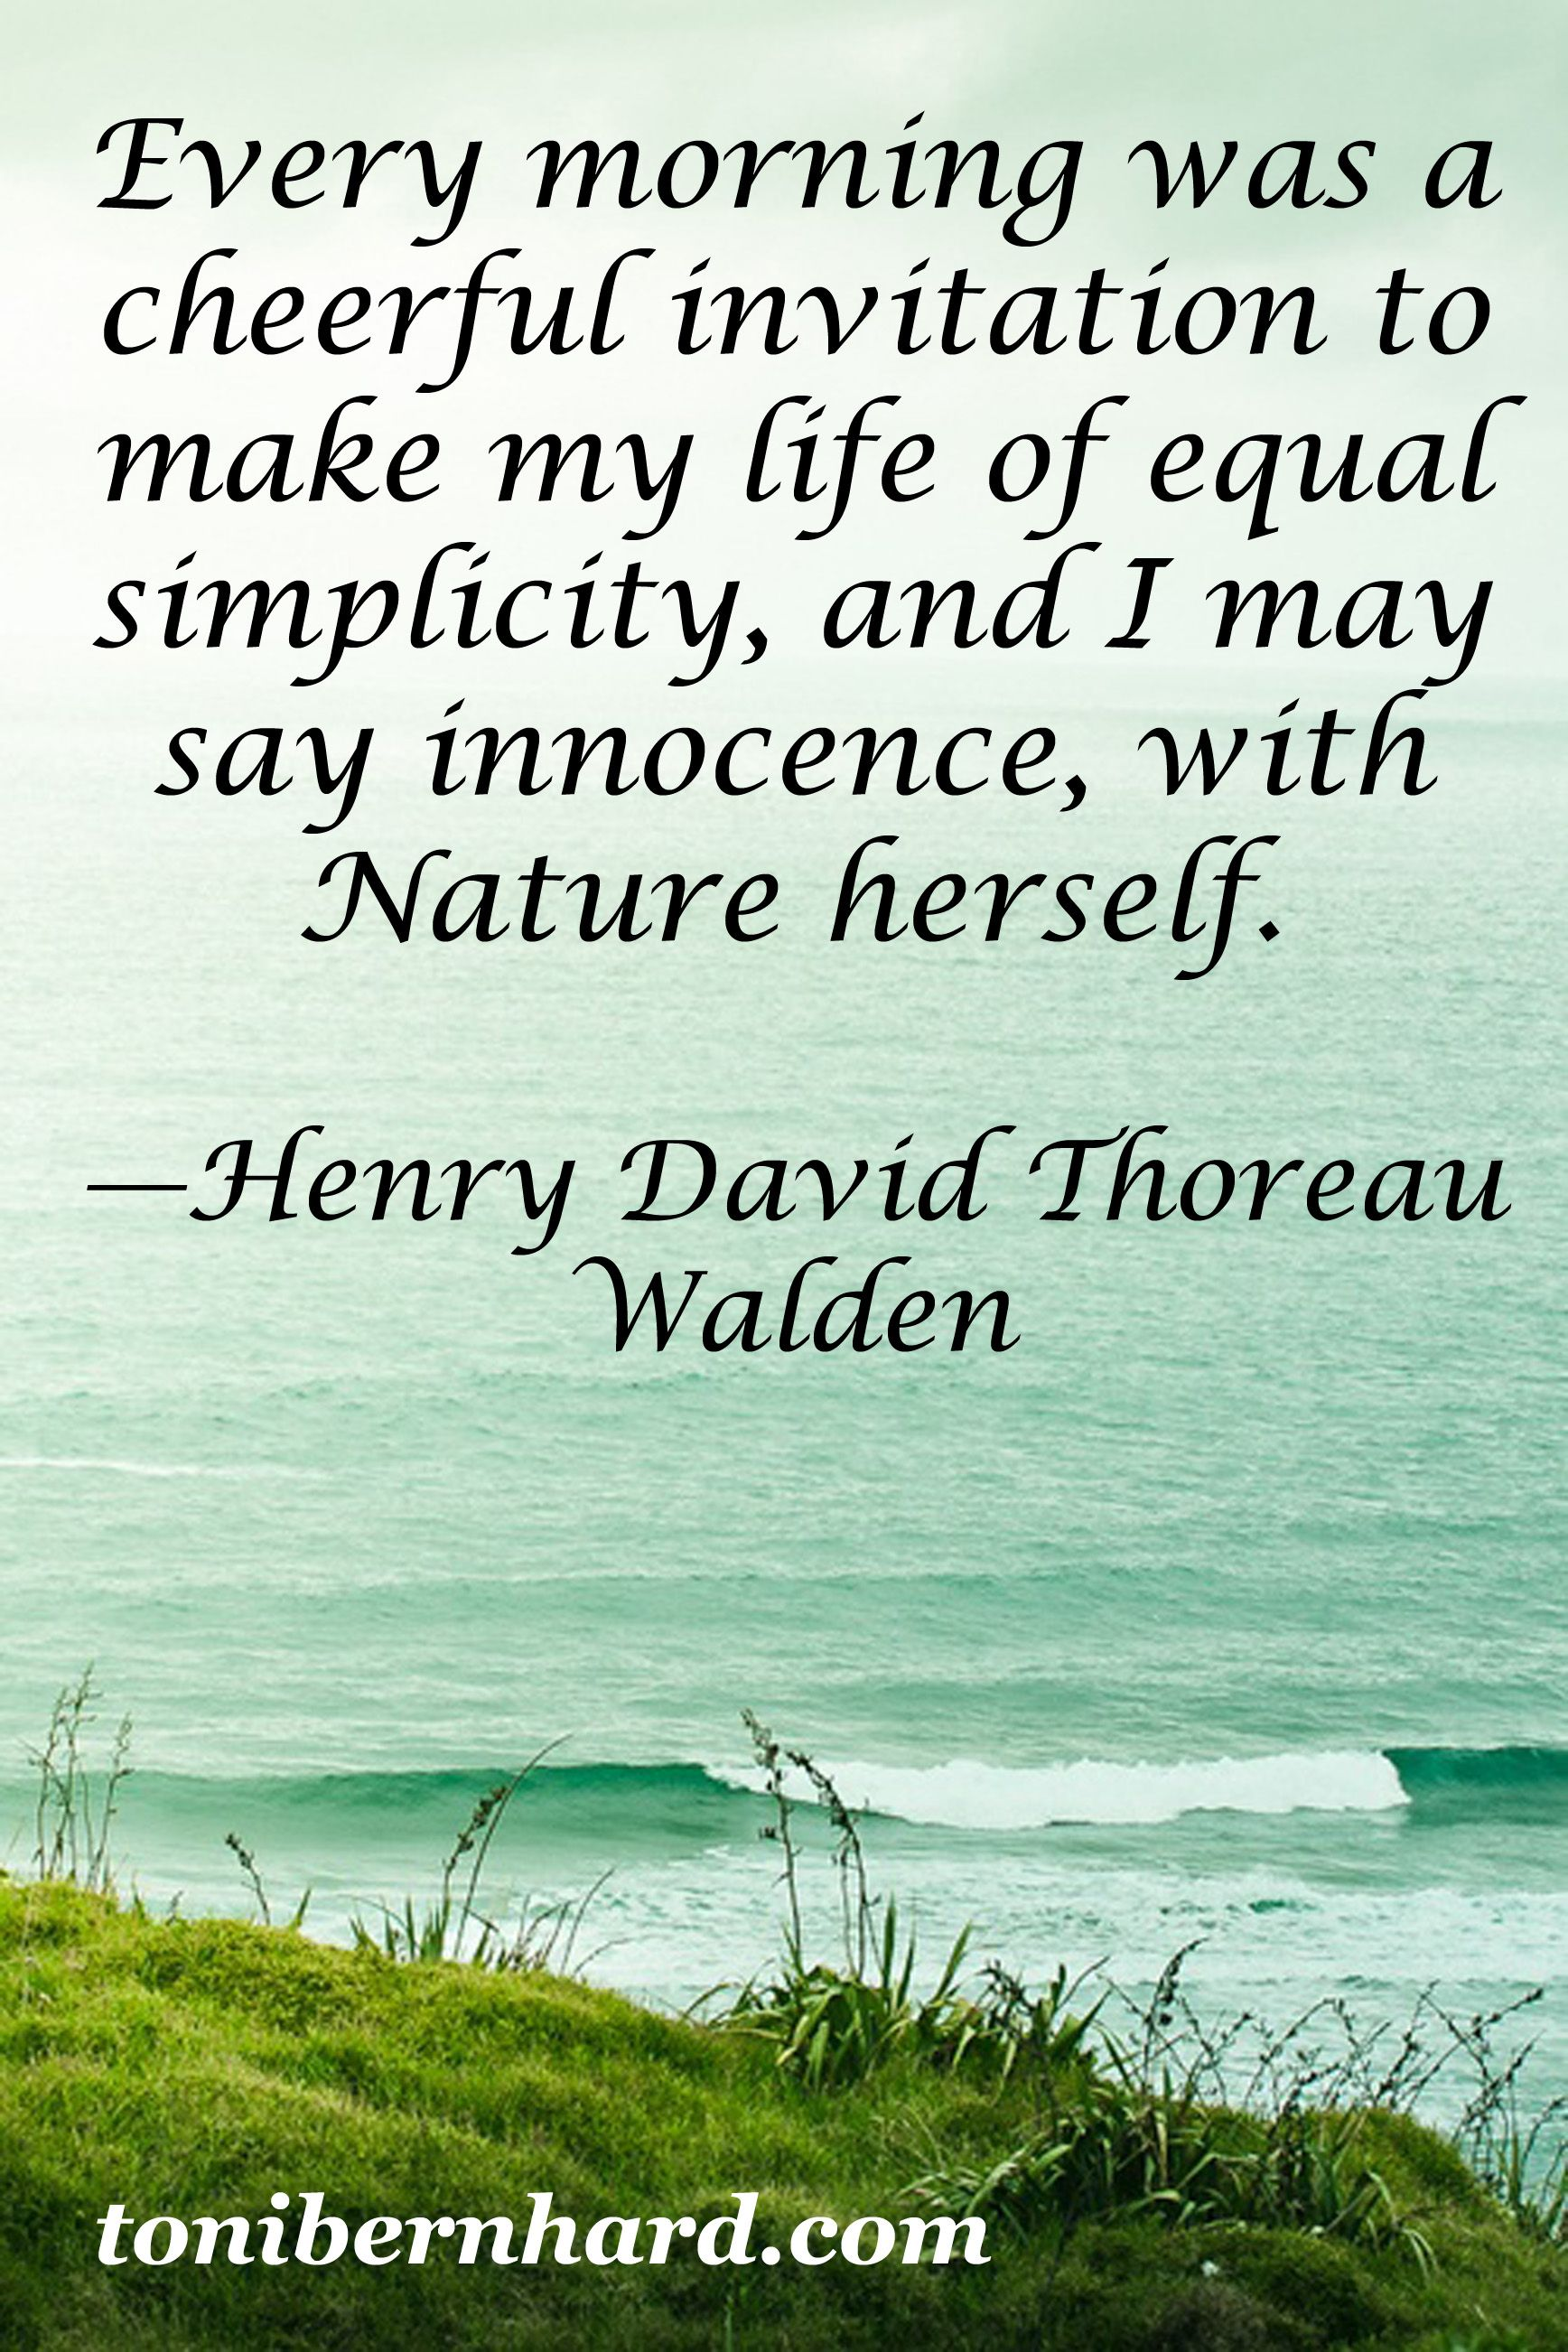 Henry David Thoreau Buddhist Inspired Life Pinterest Henry